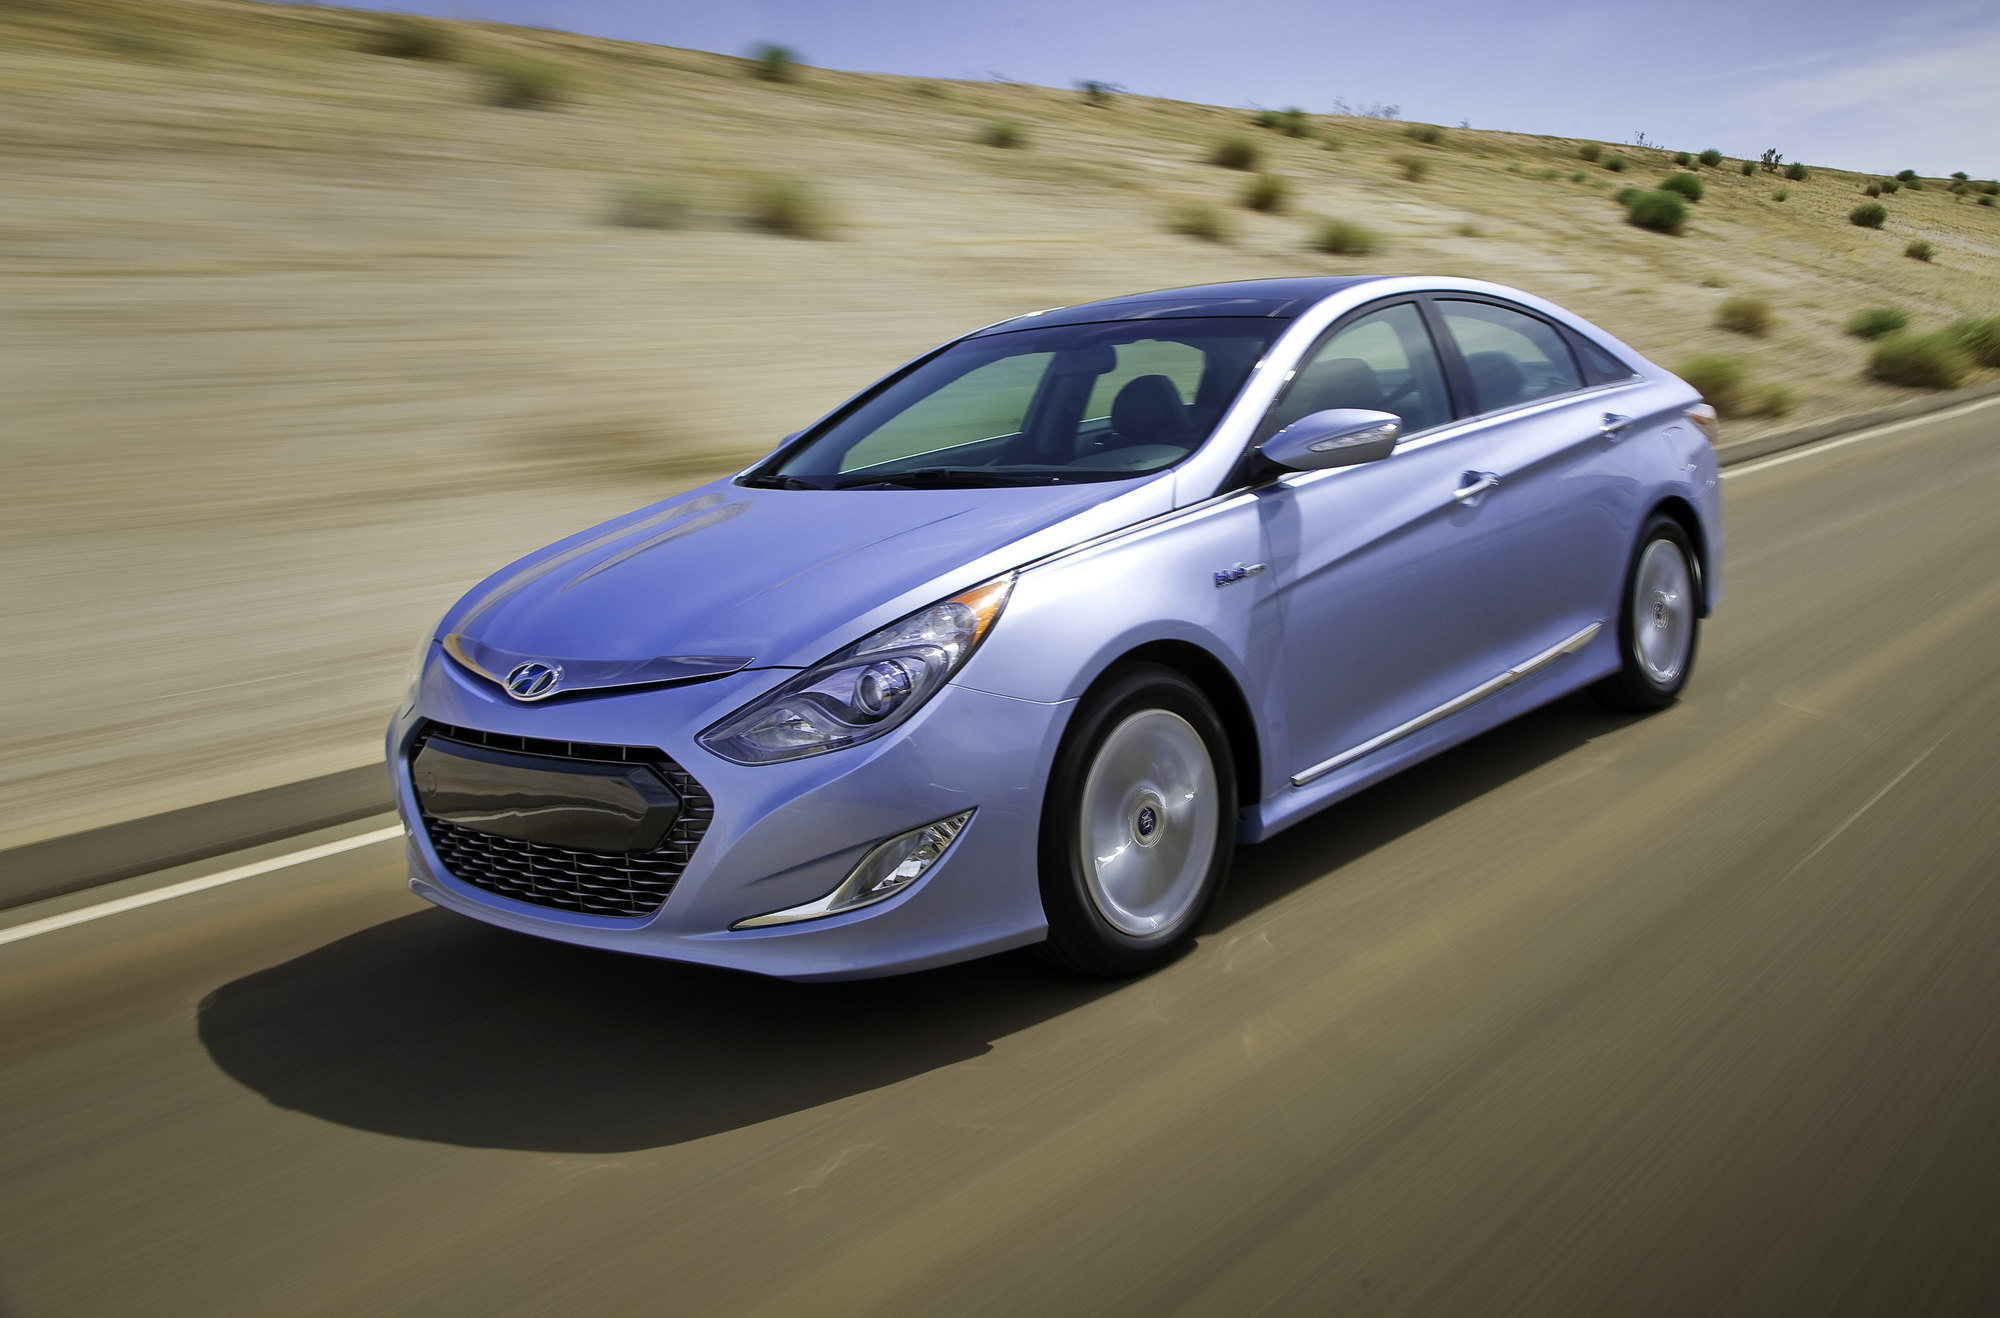 2011 hyundai sonata hybrid review gallery top speed. Black Bedroom Furniture Sets. Home Design Ideas